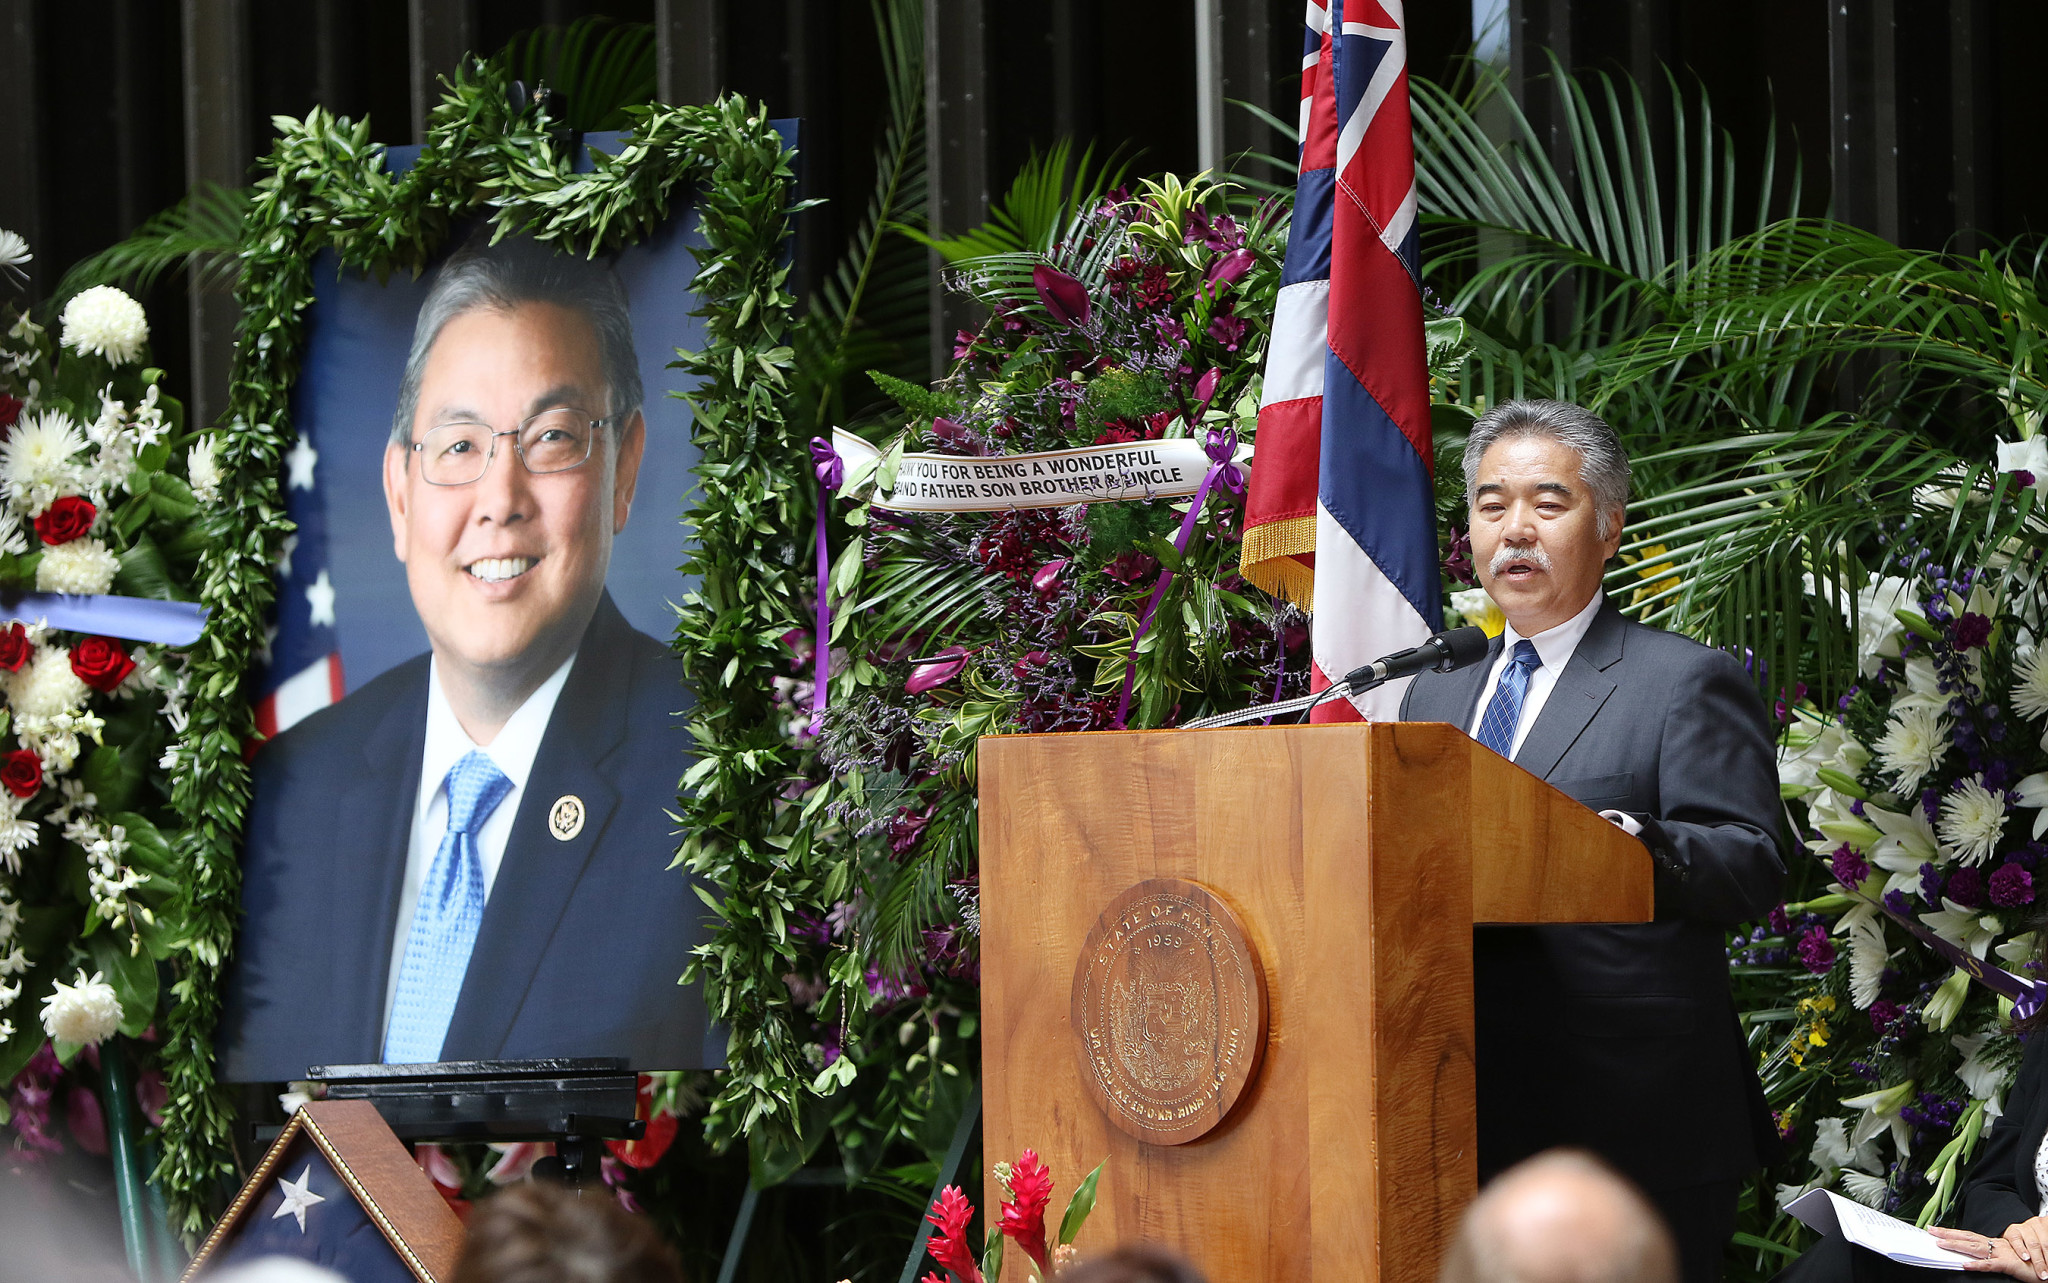 <p>Gov. David Ige recounted his friendship with Takai. &#8220;It&#8217;s so difficult for me to accept he is no longer with us. I have truly lost a dear friend and colleague.&#8221;</p>